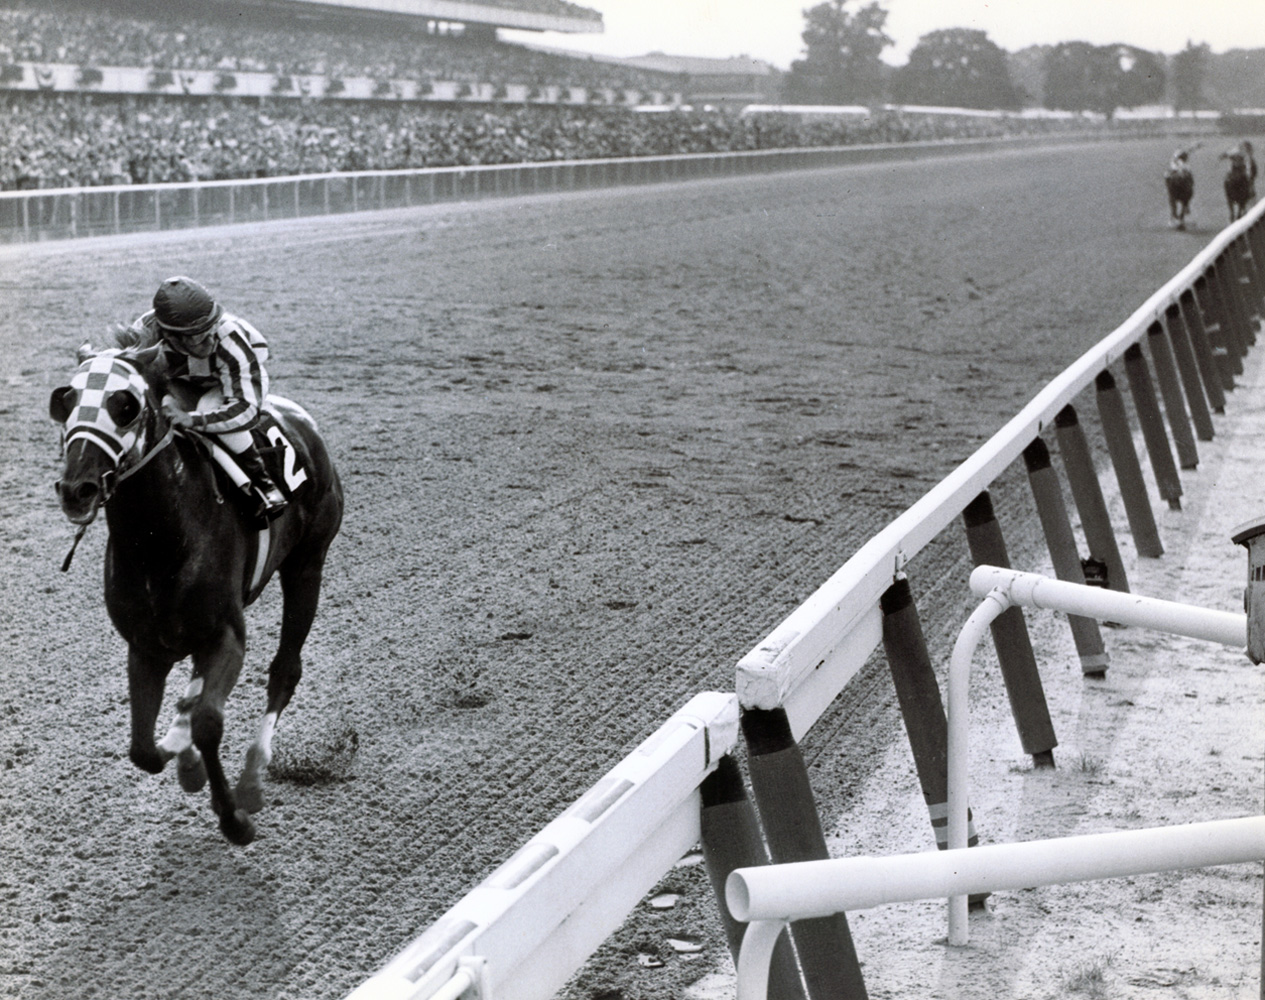 Ron Turcotte and Secretariat winning the 1973 Belmont Stakes and Triple Crown by a record-breaking 31 lengths (Bob Coglianese/Museum Collection)